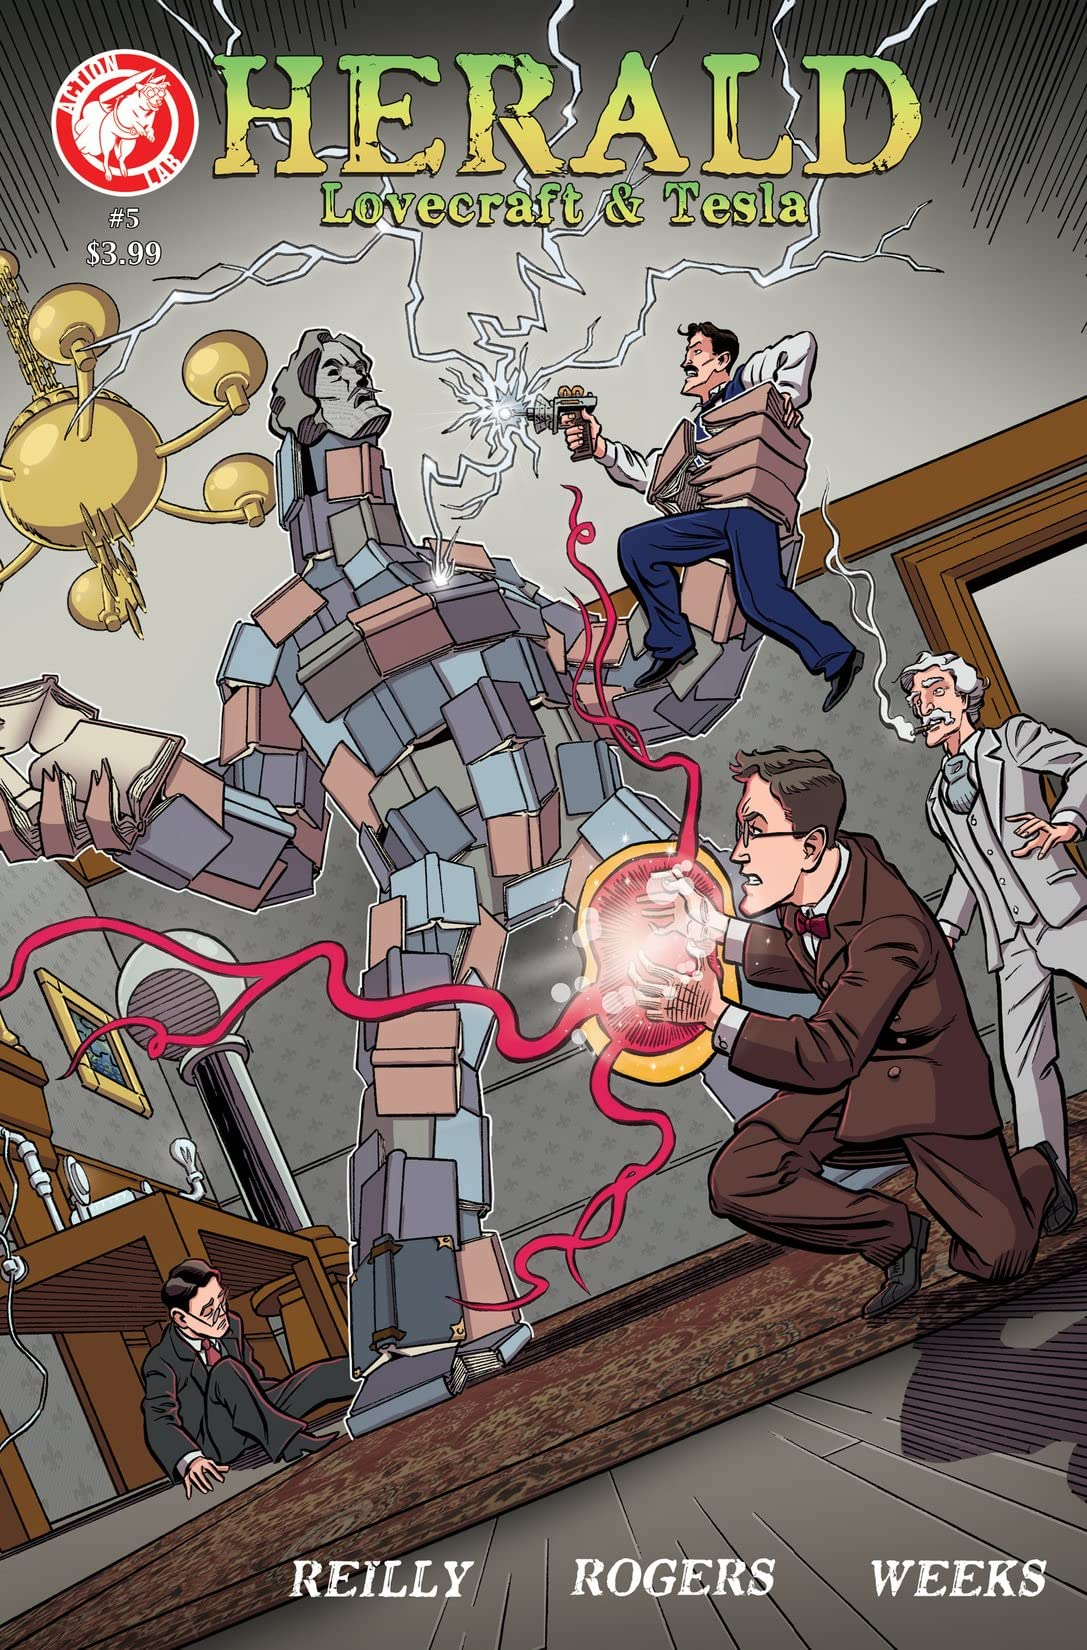 Herald: Lovecraft & Tesla #5